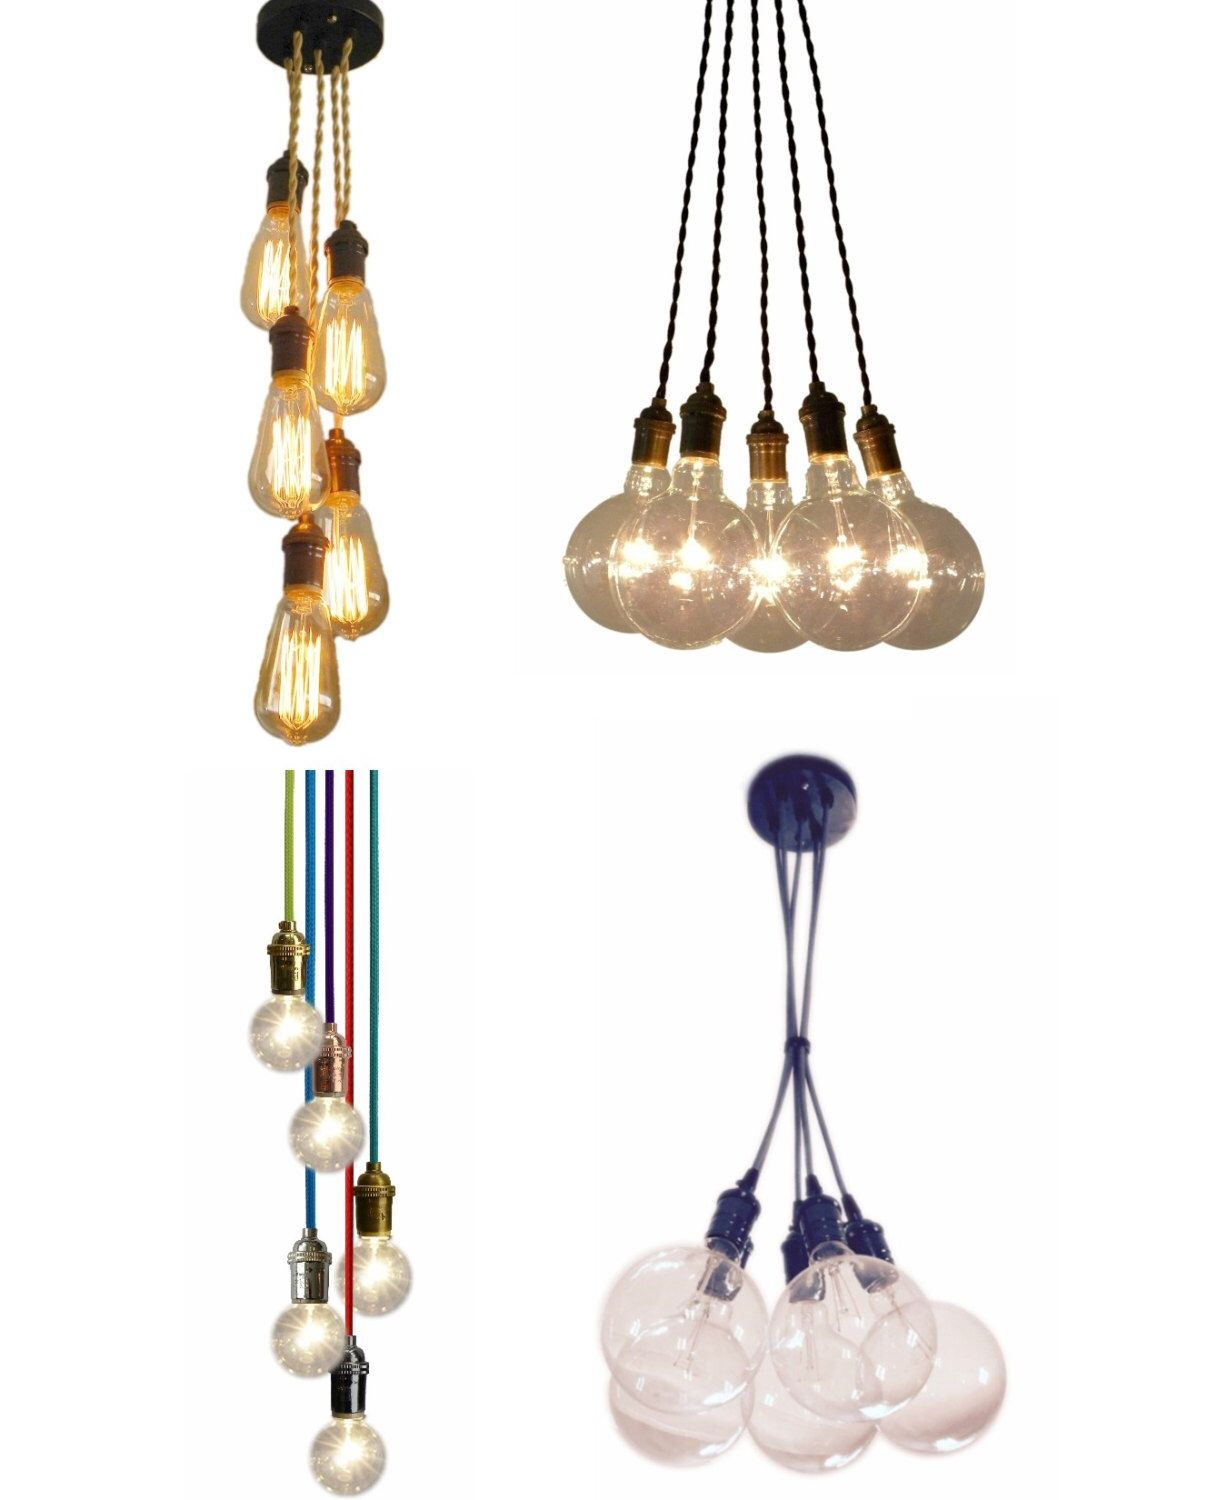 pendant light cluster any colors pendant light industrial